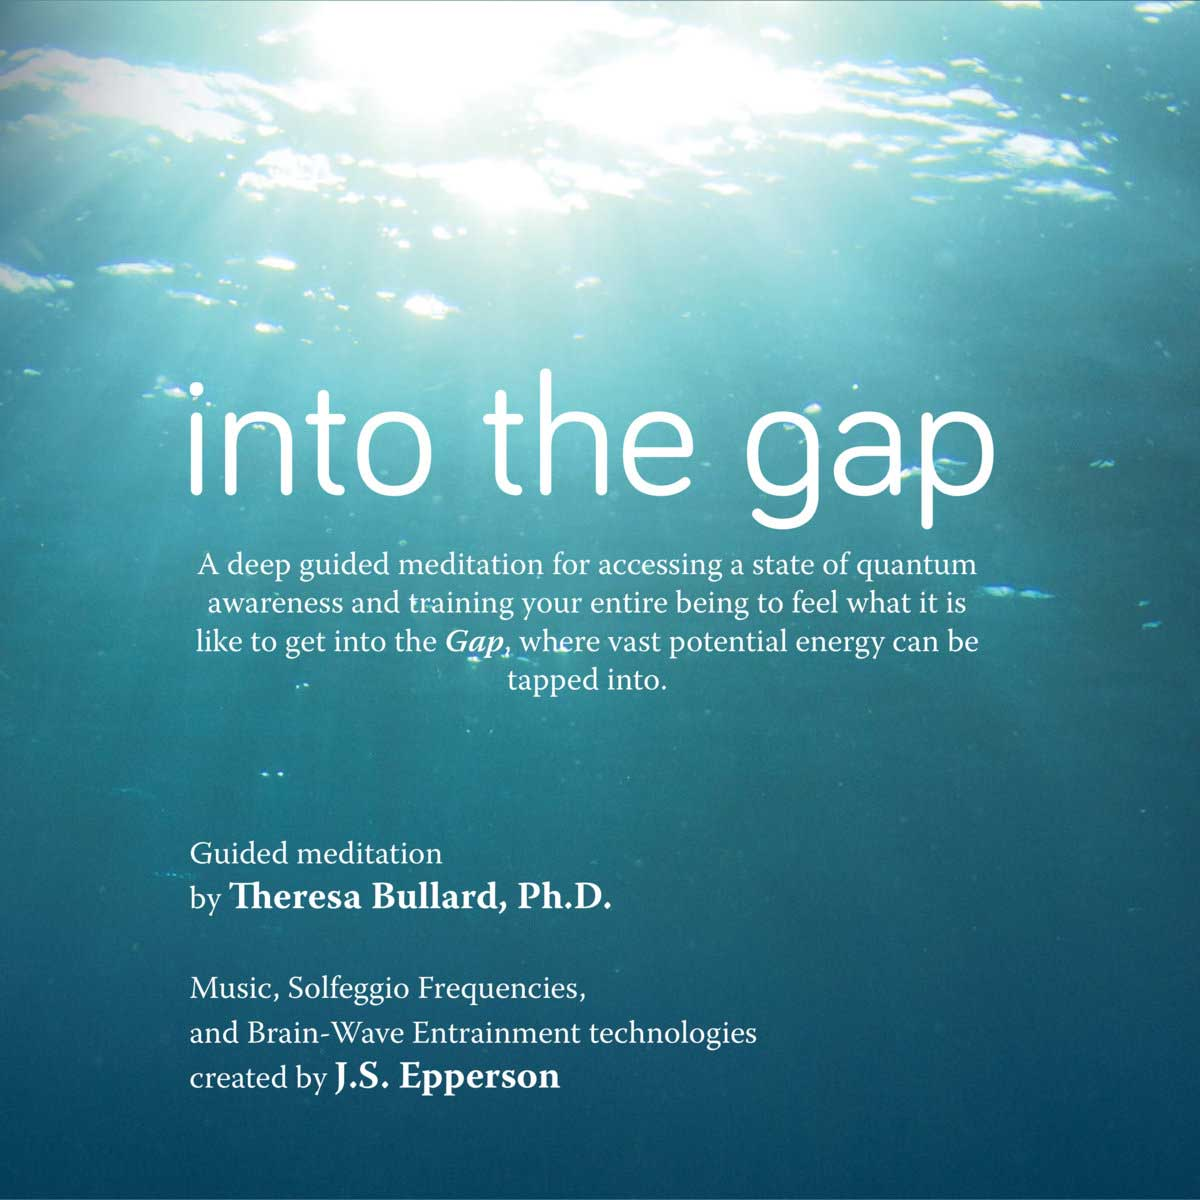 into-the-gap